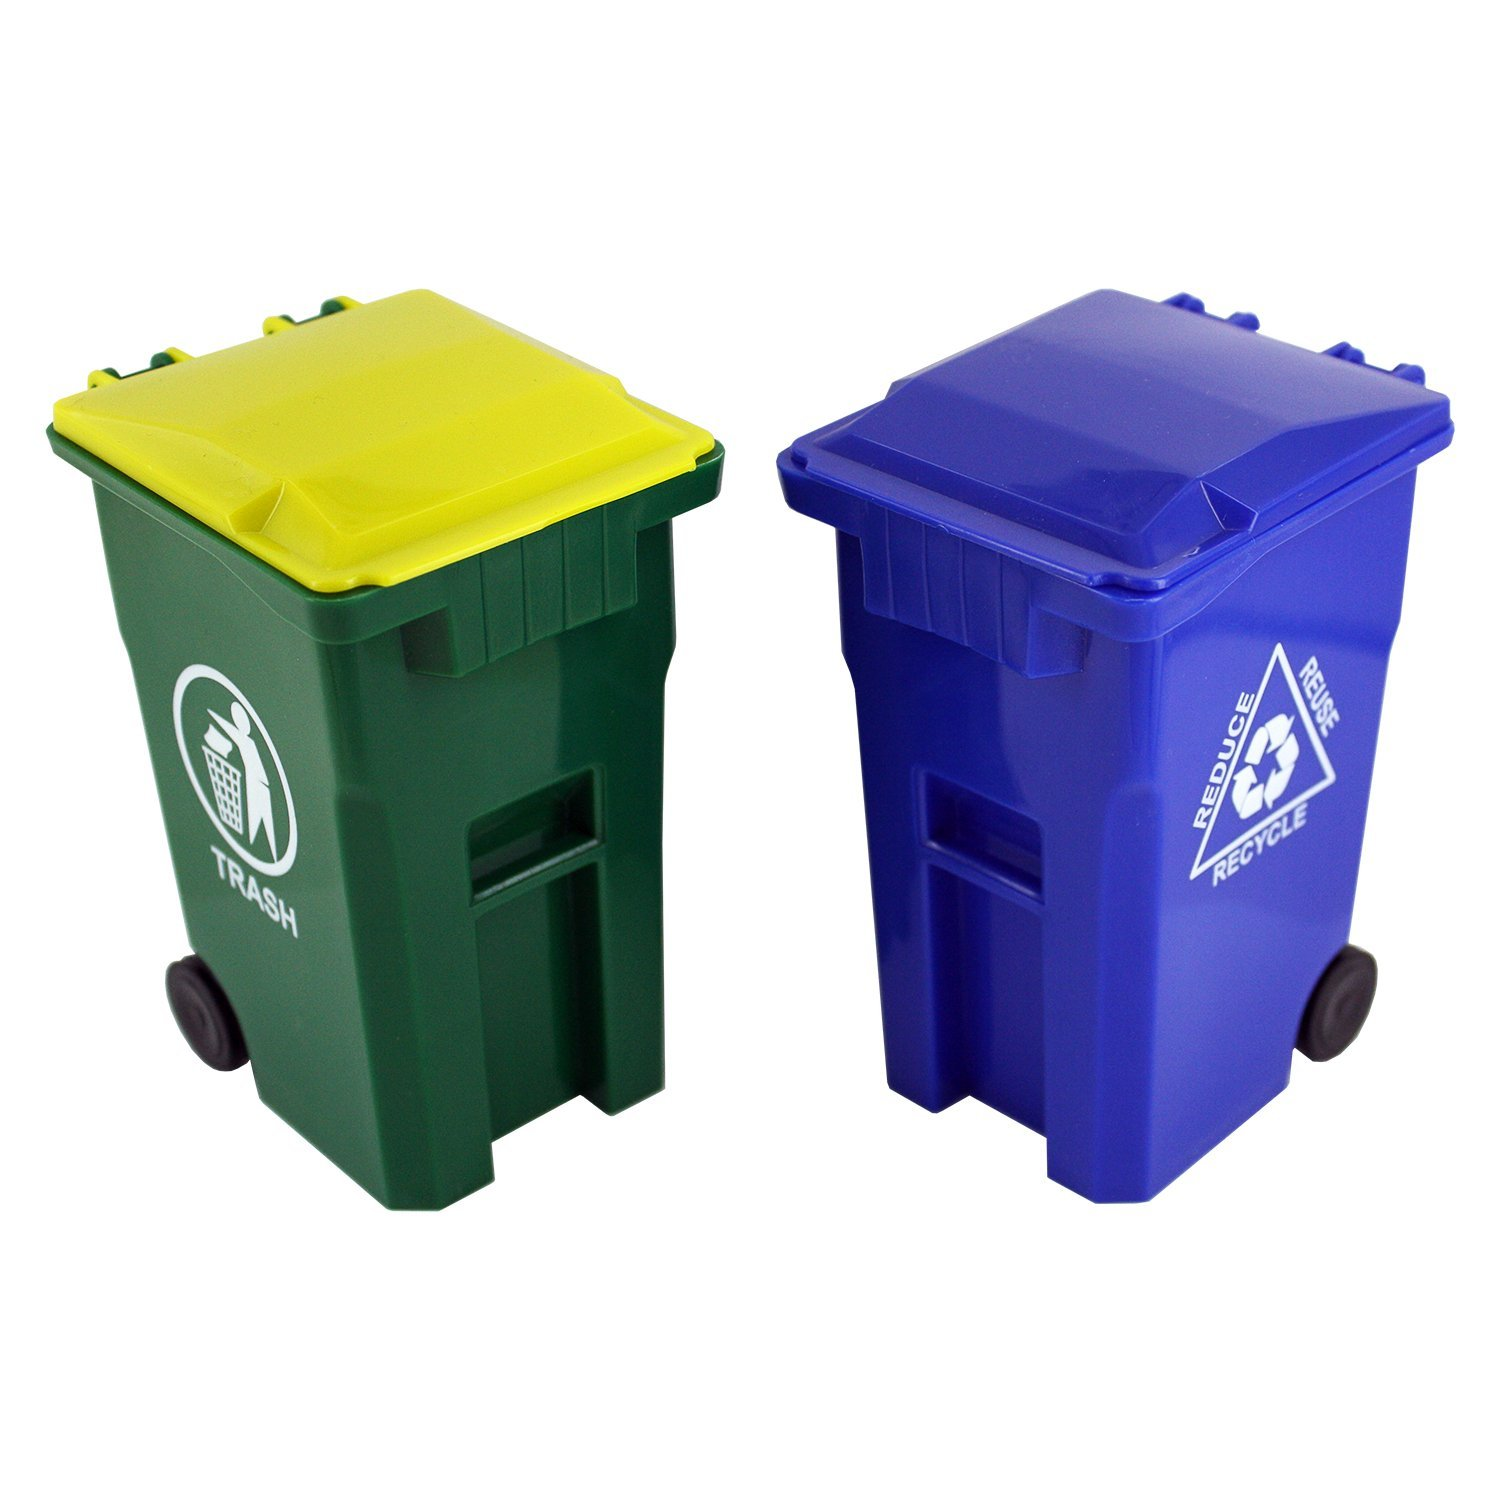 Thornton's Office Supplies Mini Curbside Trash and Recycle Can Set Pencil Cup Holder